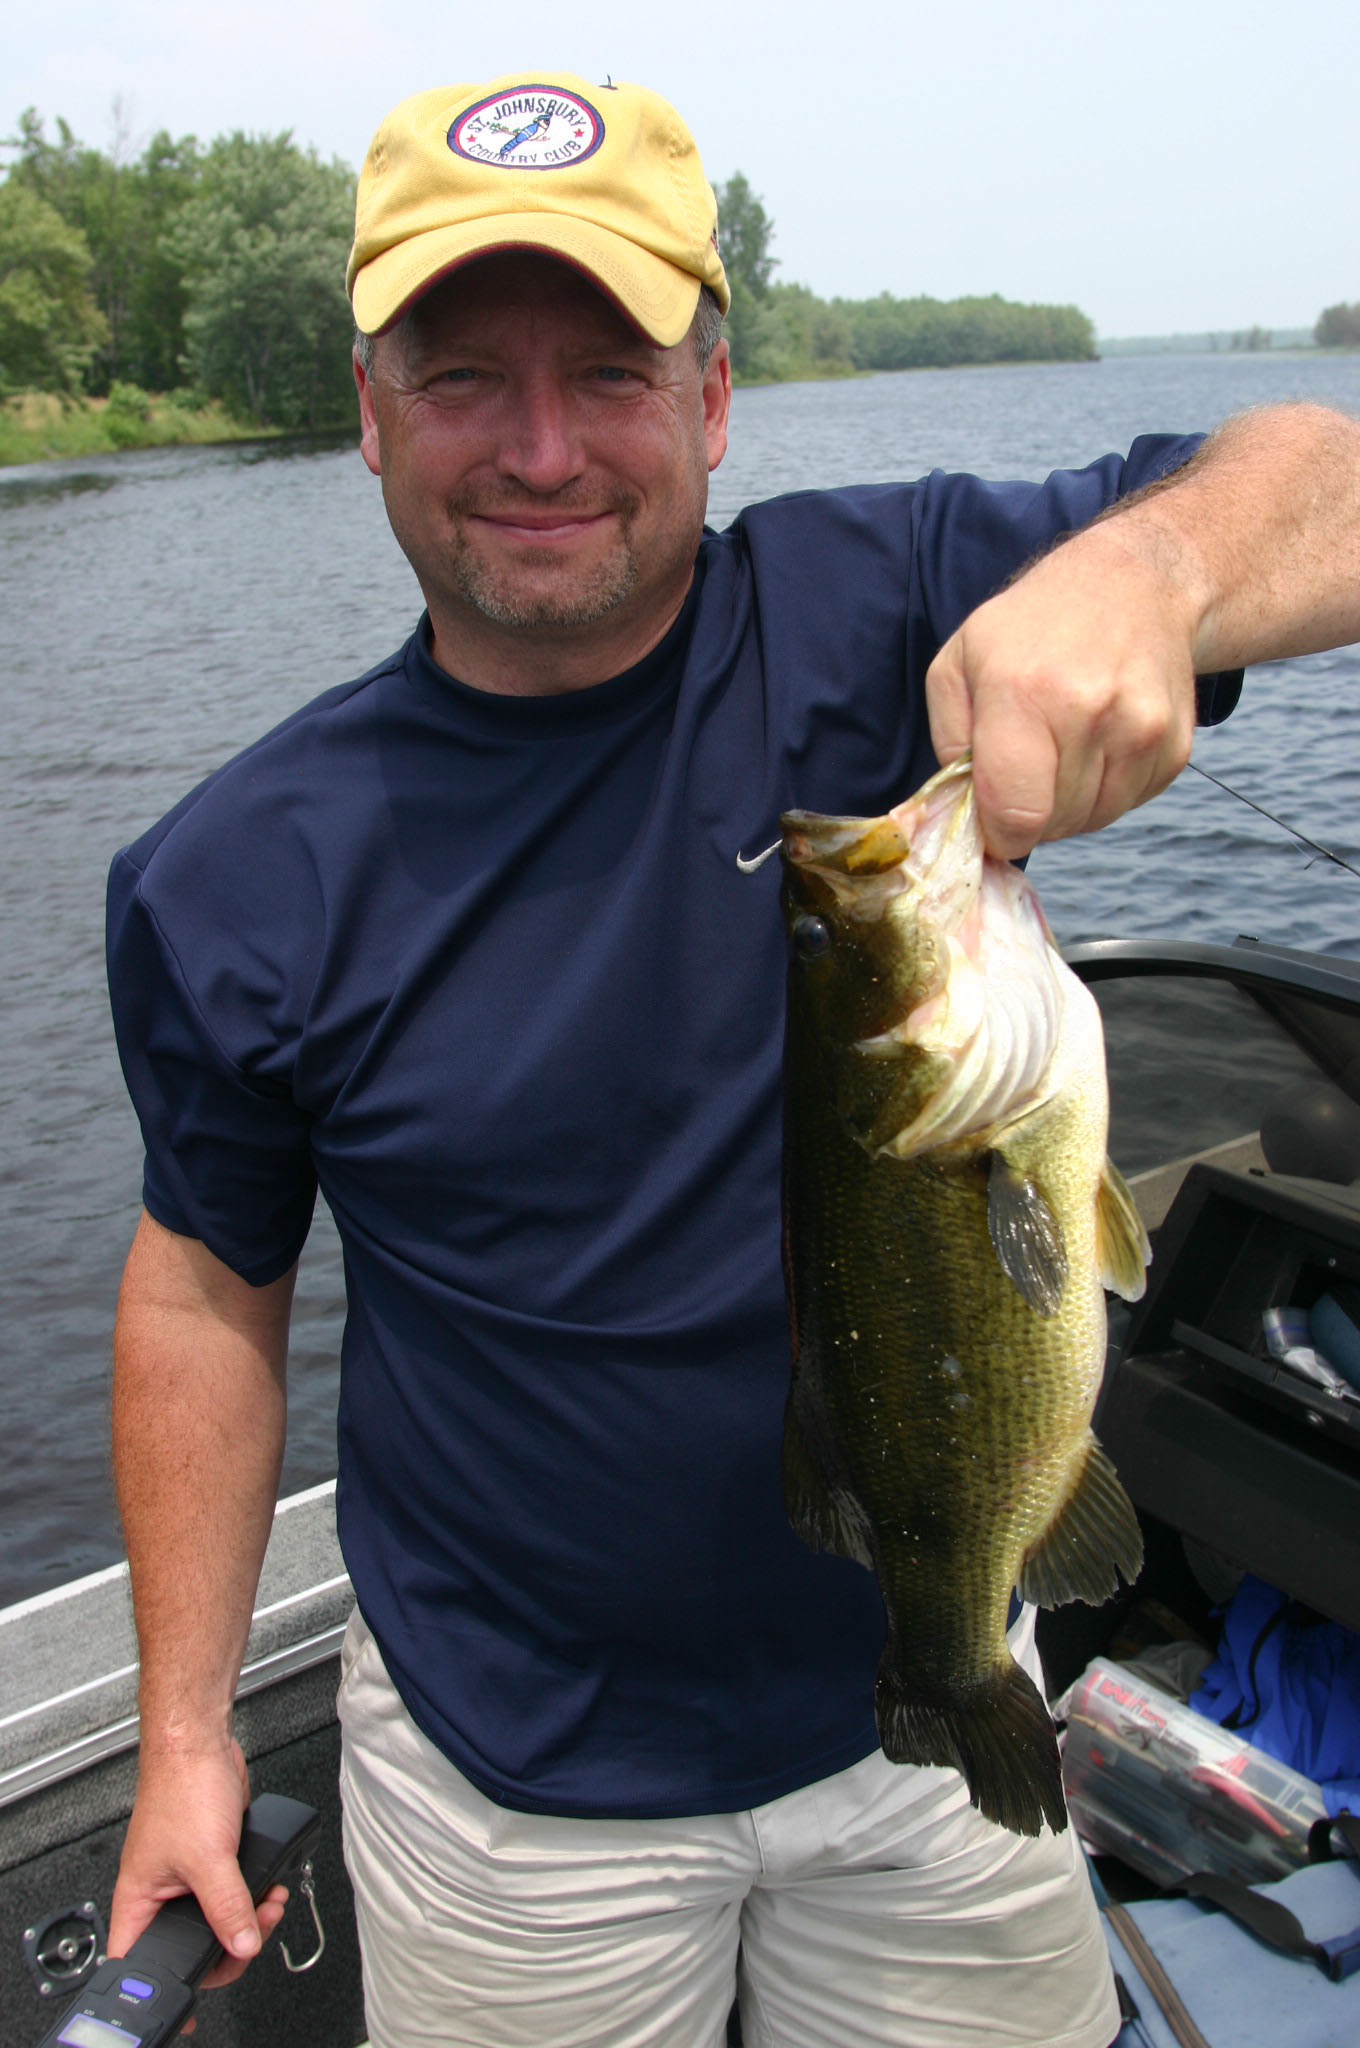 New hampshire vermont moose country guide service for Bass fishing nh